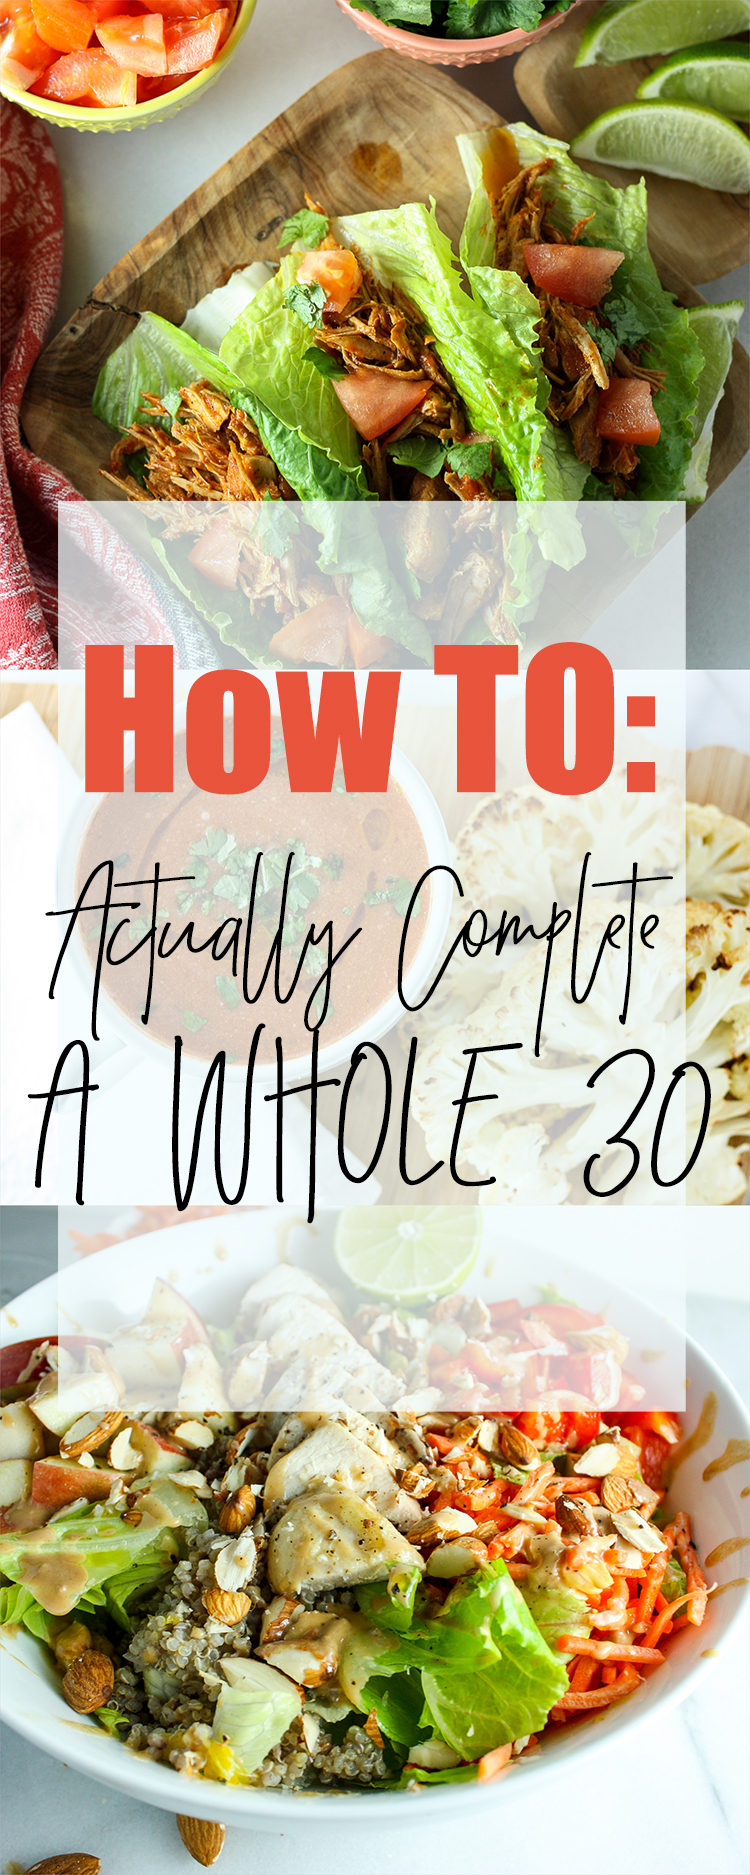 How To Actually Complete a Whole30 - and actually have fun while doing it.